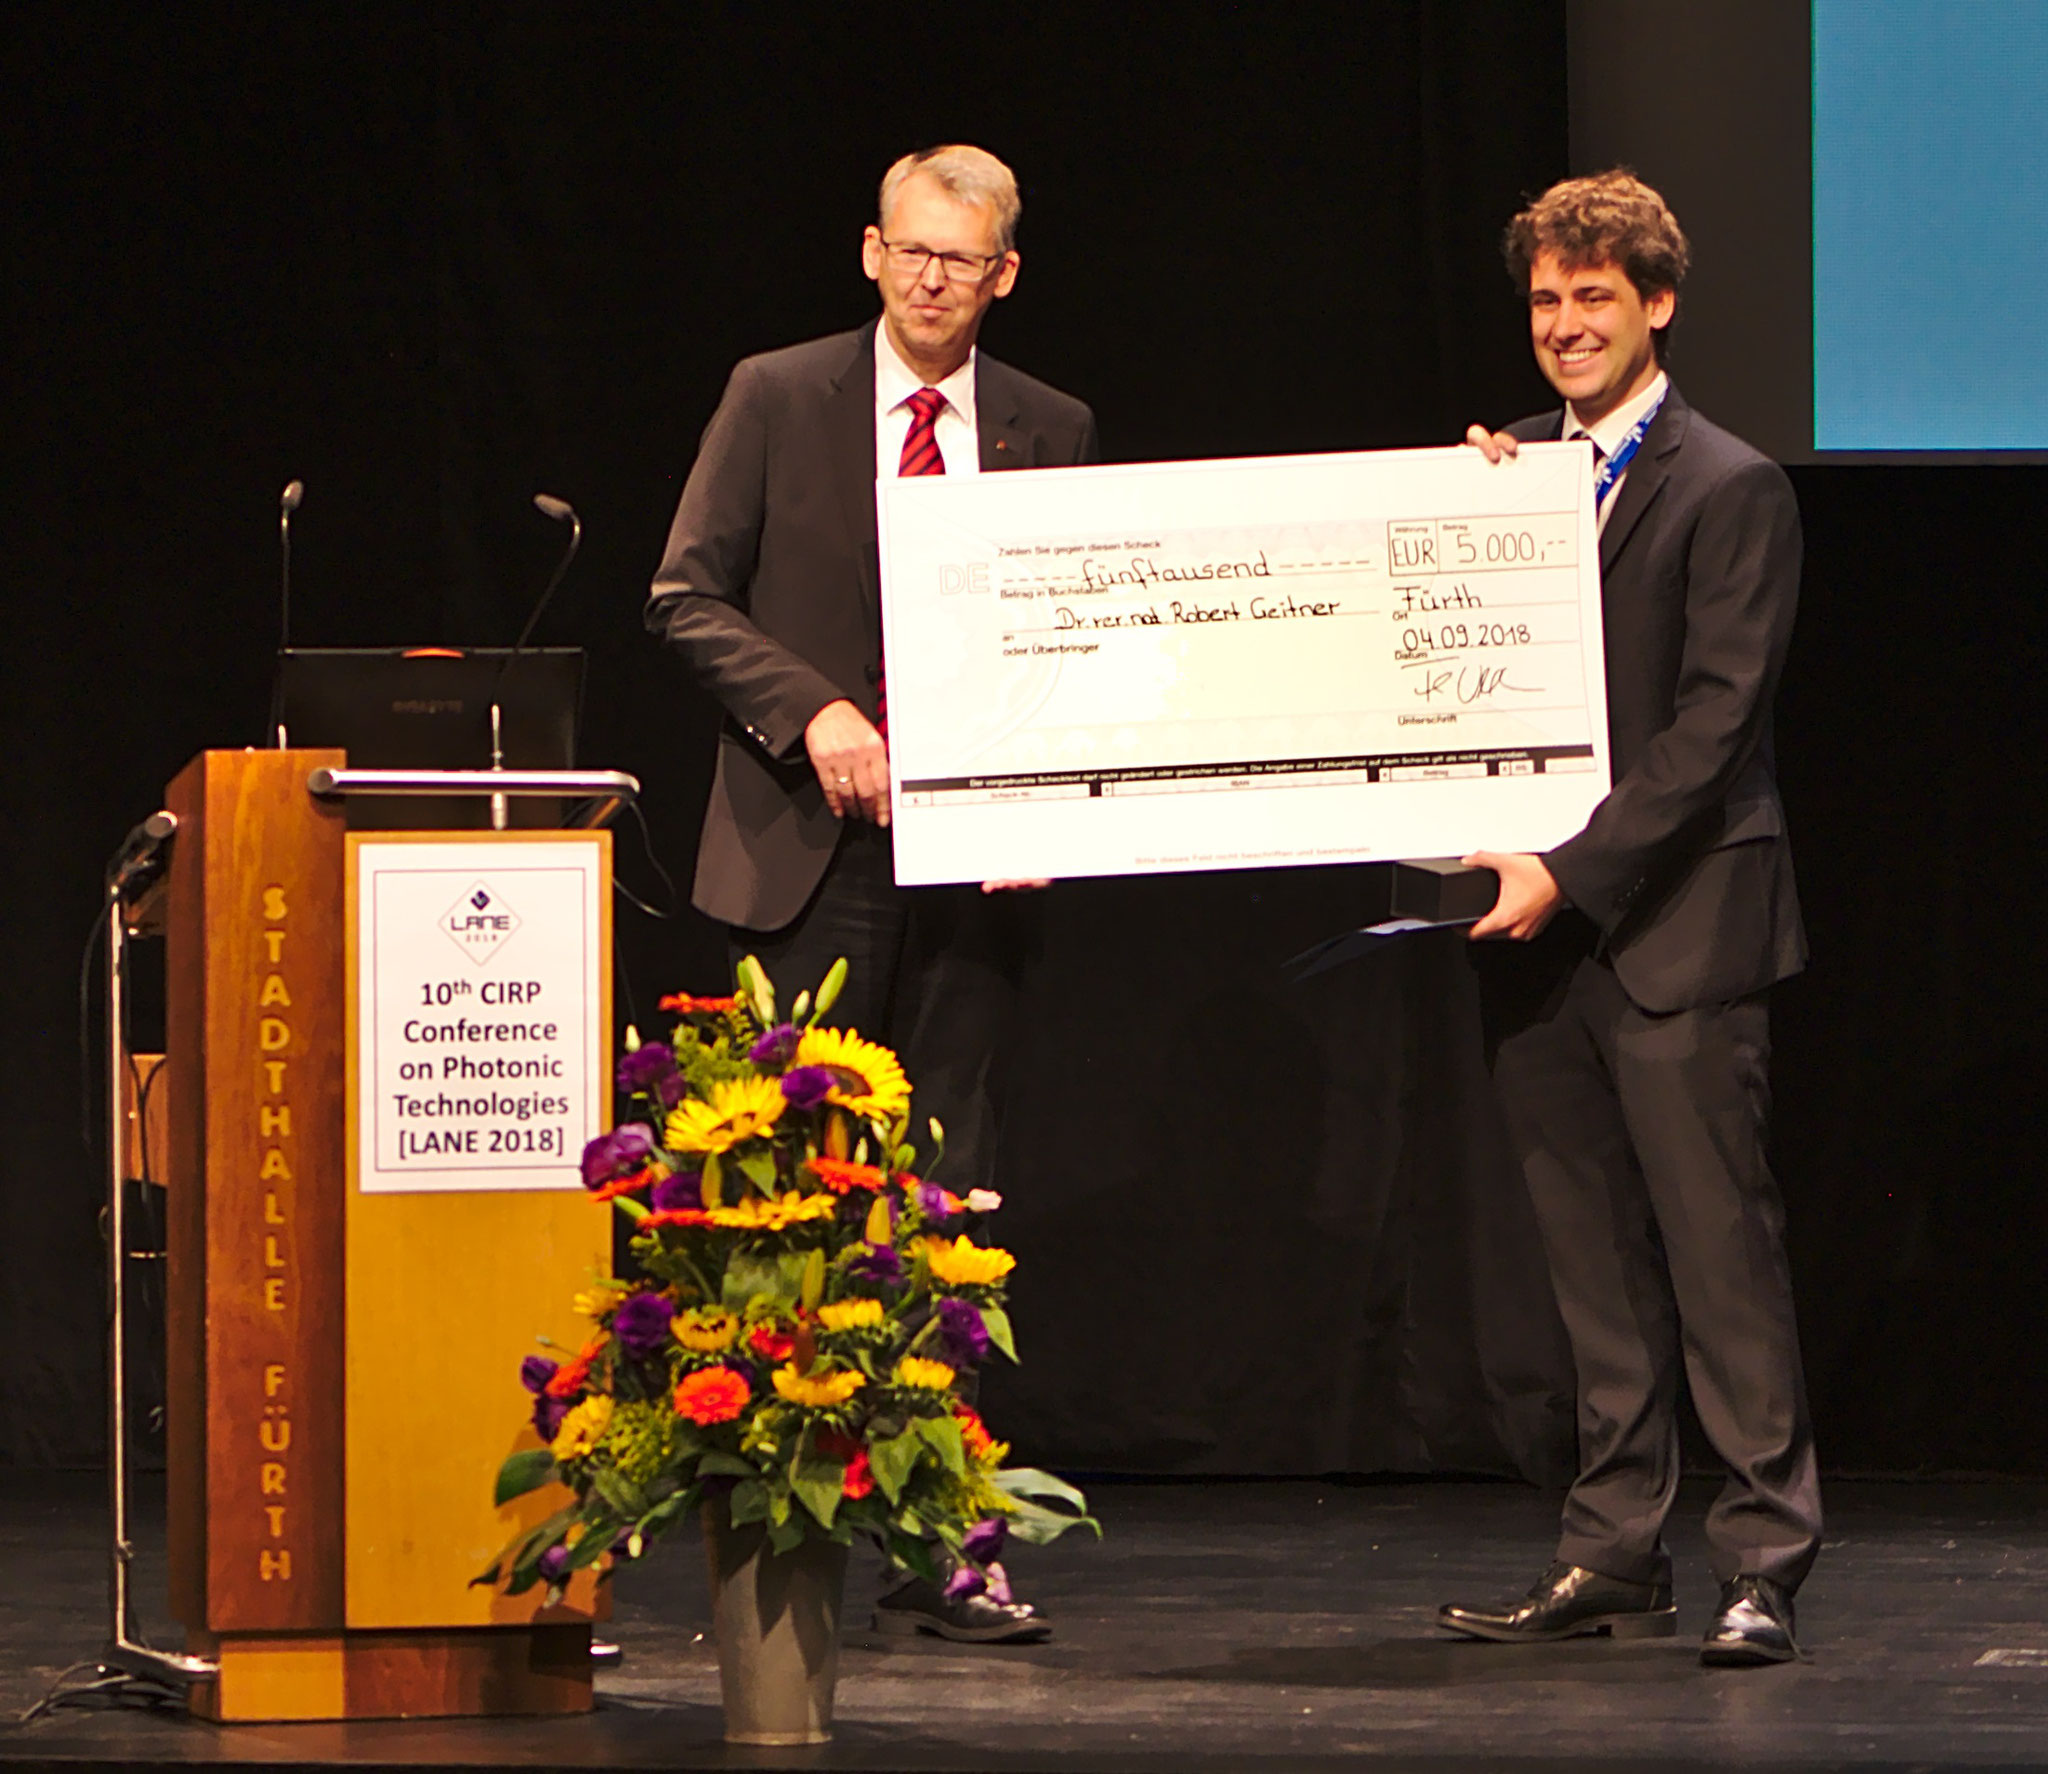 Prof. Frank Vollertsen from BIAS – Bremer Institut für angewandte Strahltechnik GmbH (left) and Dr. Robert Geitner from Utrecht University (right) during the ceremony for the Award of the Scientific Society for Laser Technology (WLT e.V.)